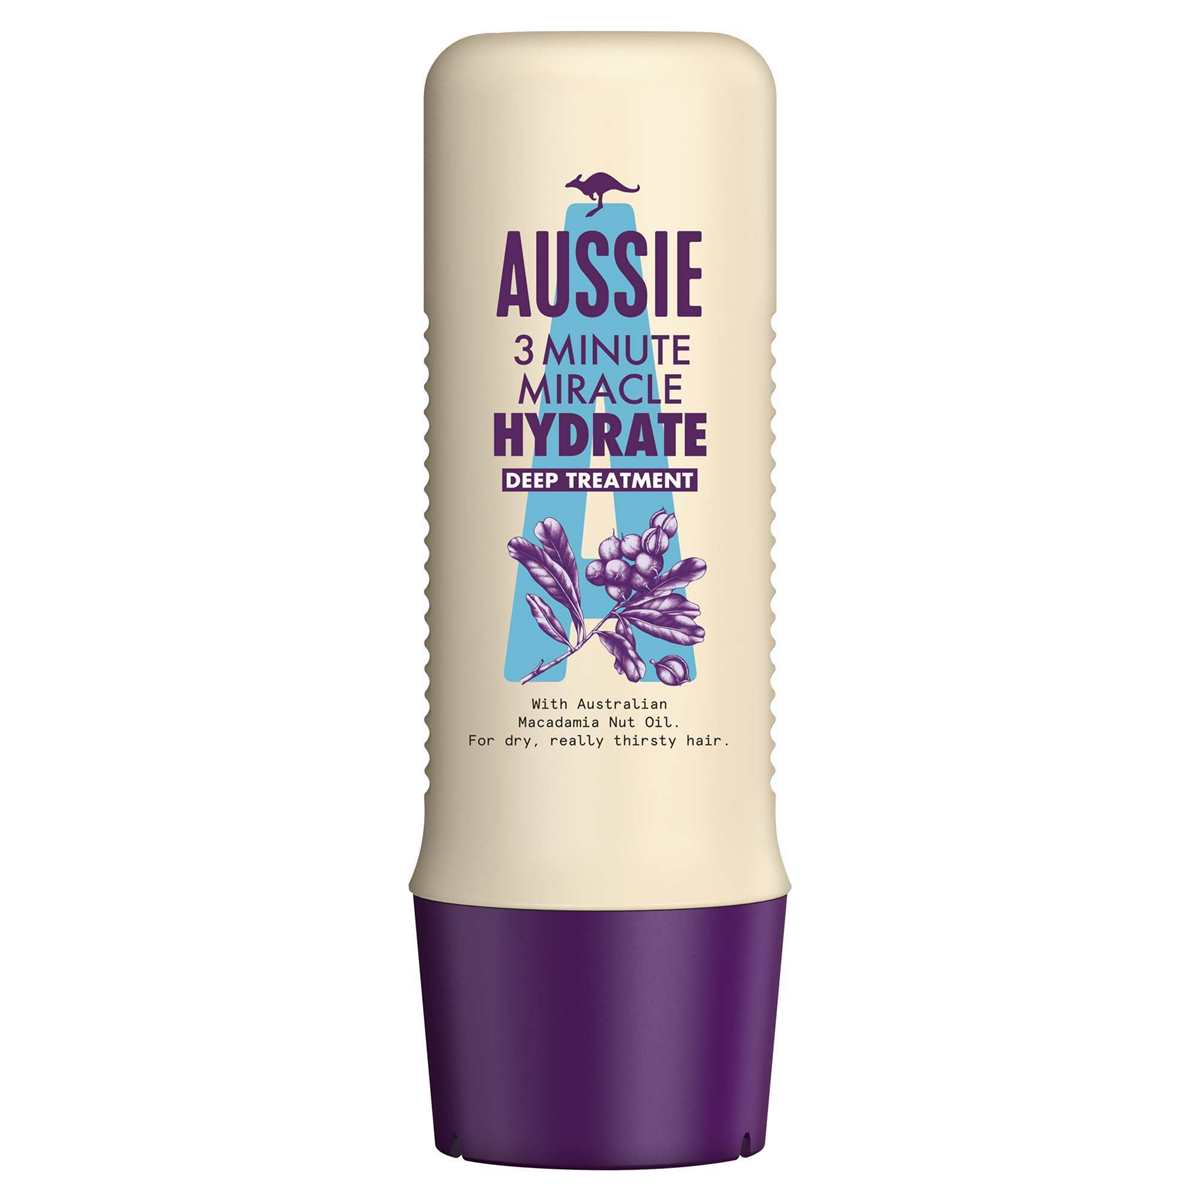 Aussie  3 Minute Miracle Hydrate. Mascarilla hidratante